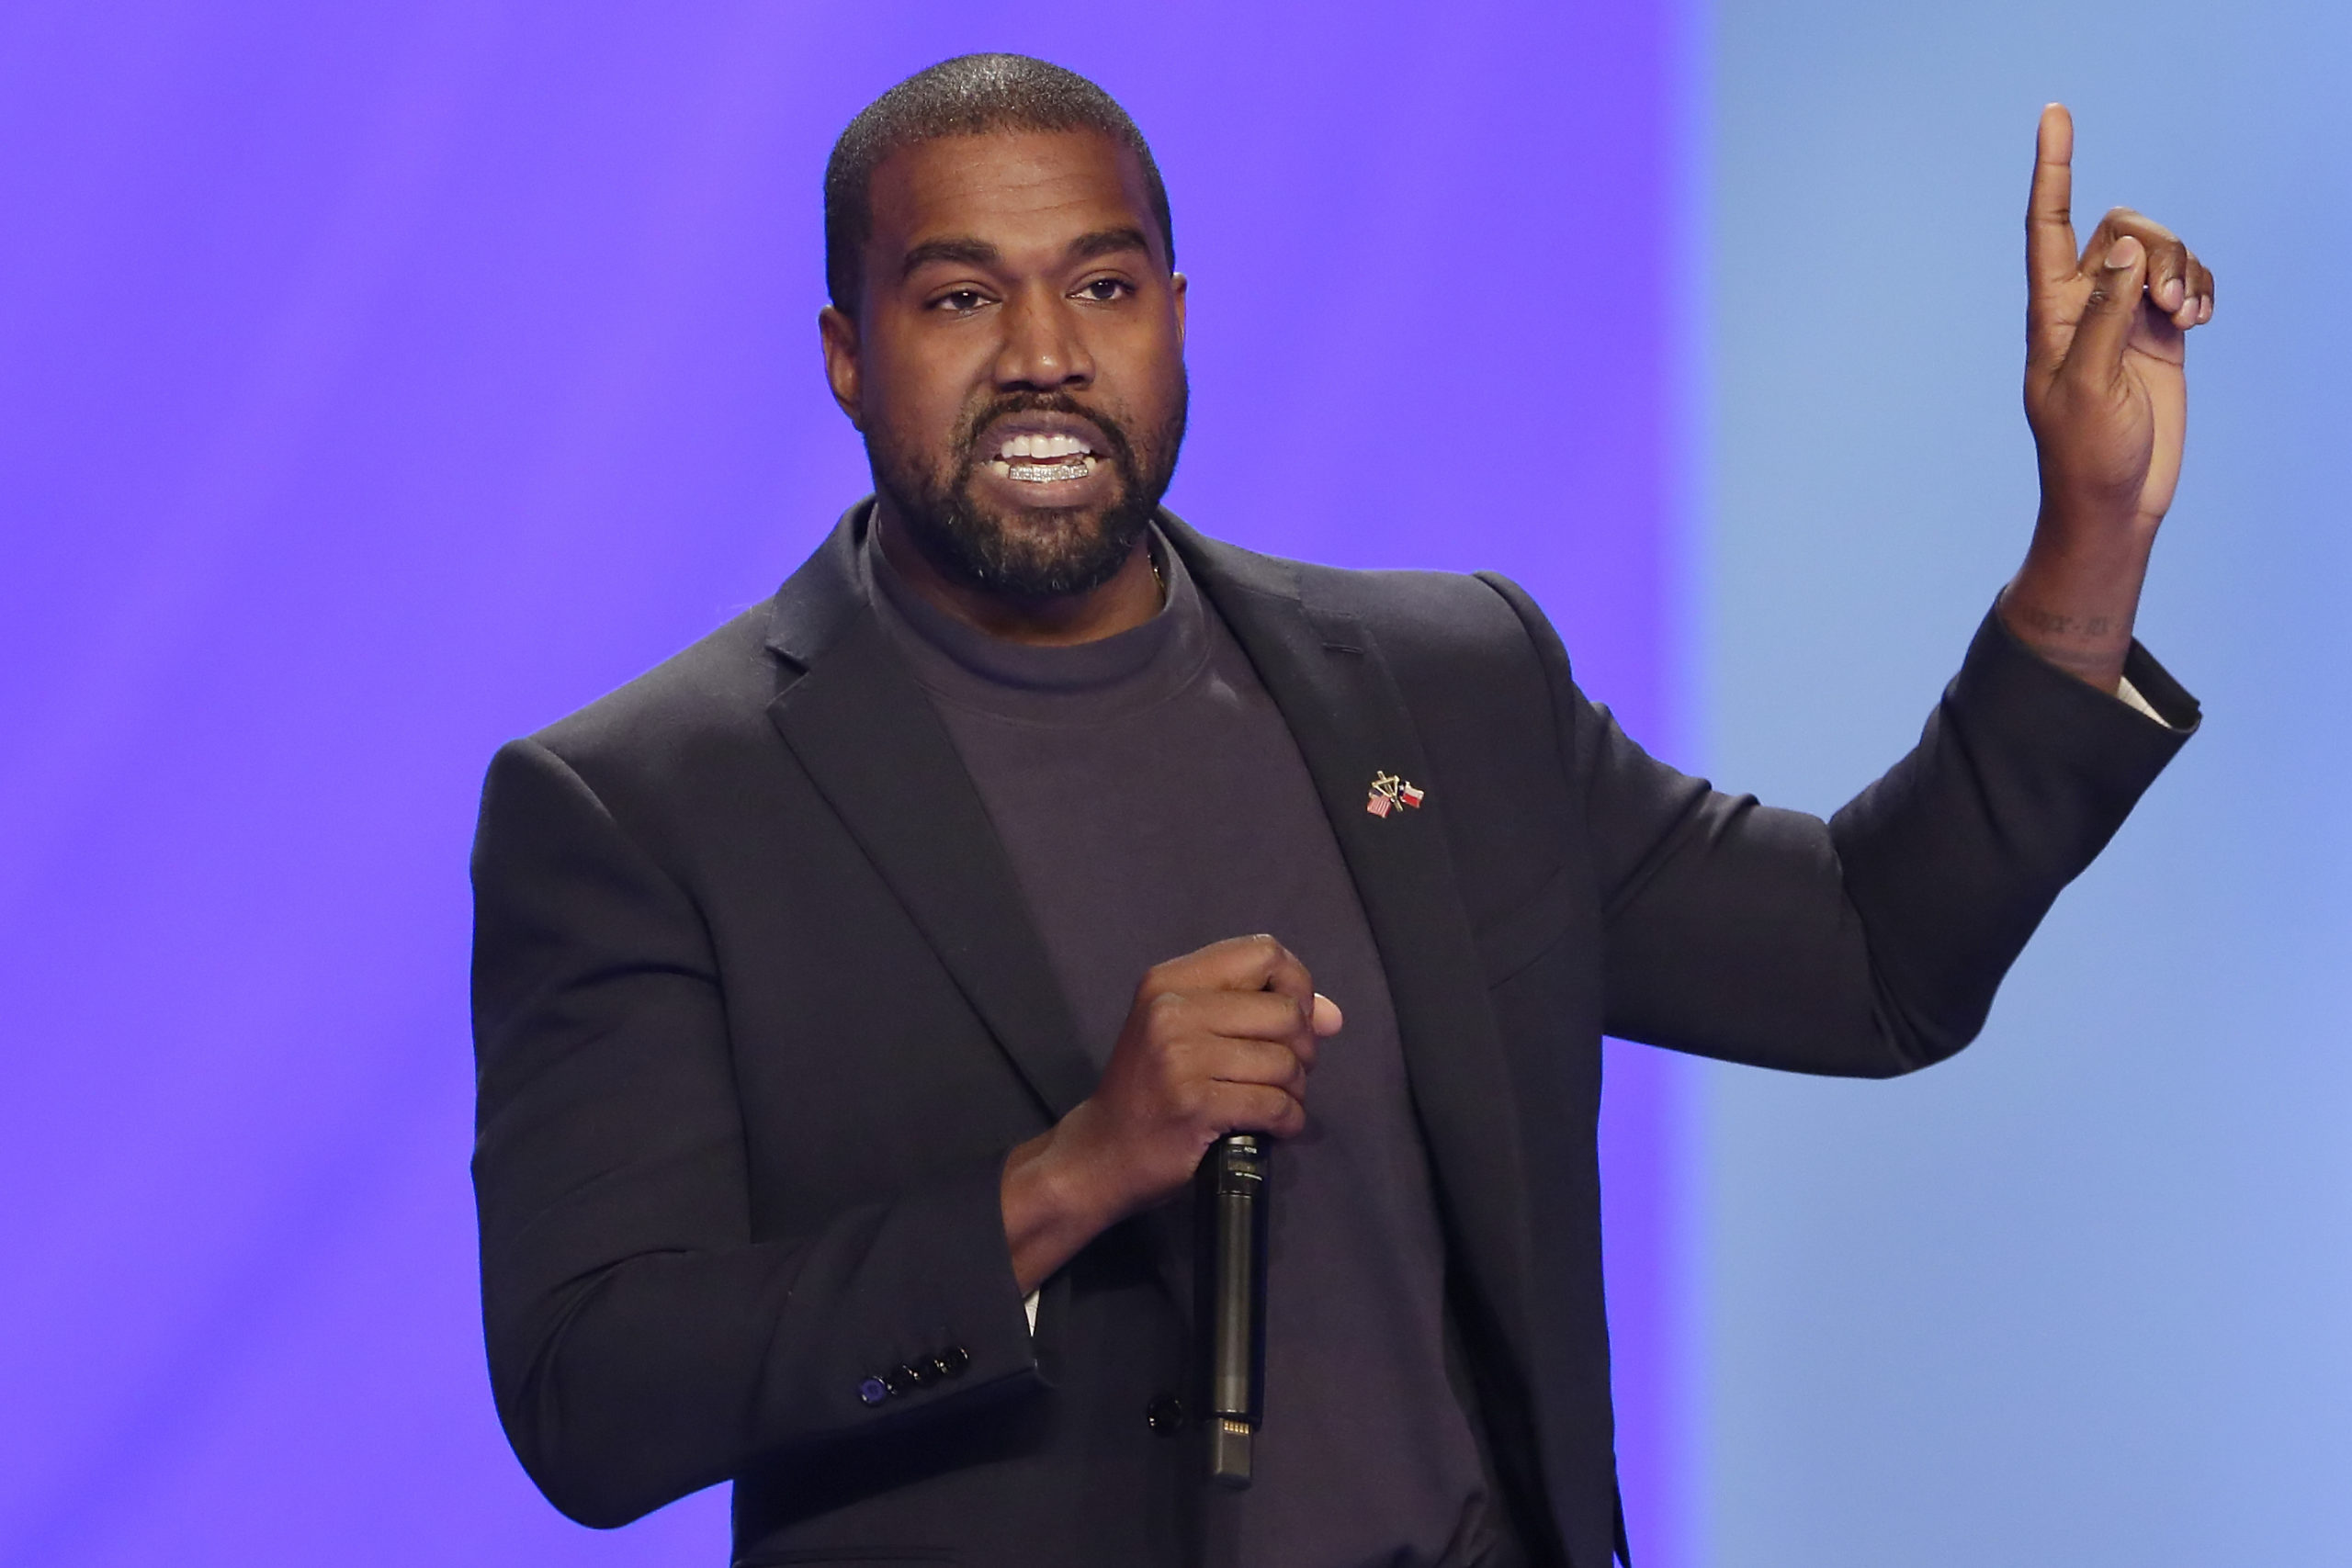 Before a single item of the long-awaited Kanye West-Gap partnership is sold, UBS Group says the collaboration is valued at $970 million.